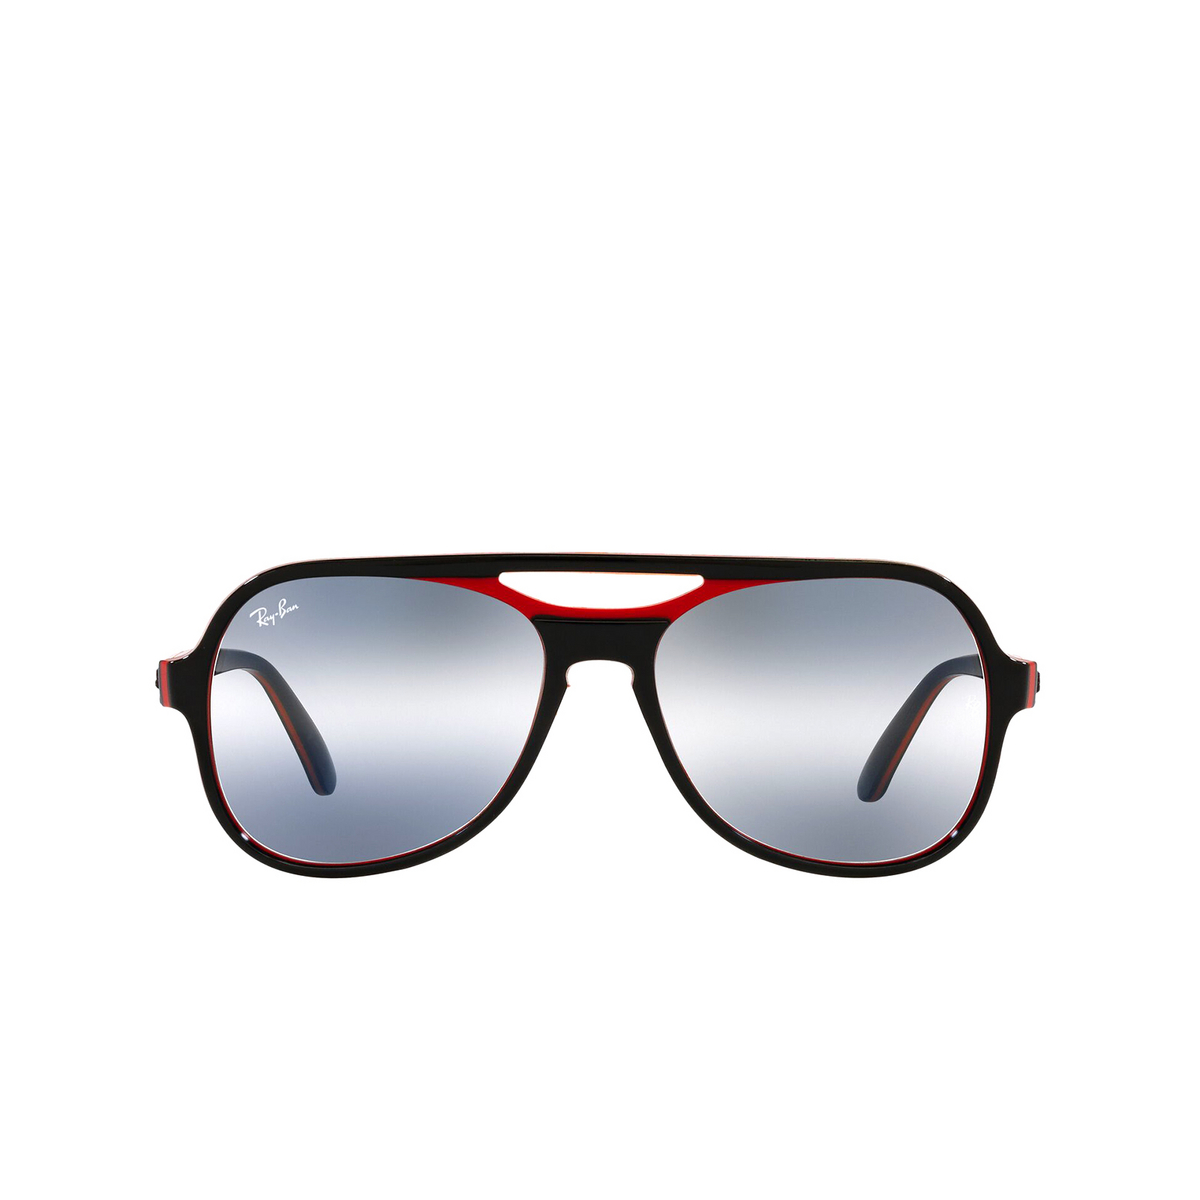 Ray-Ban® Aviator Sunglasses: Powderhorn RB4357 color Black Red Blue 6552GA - front view.